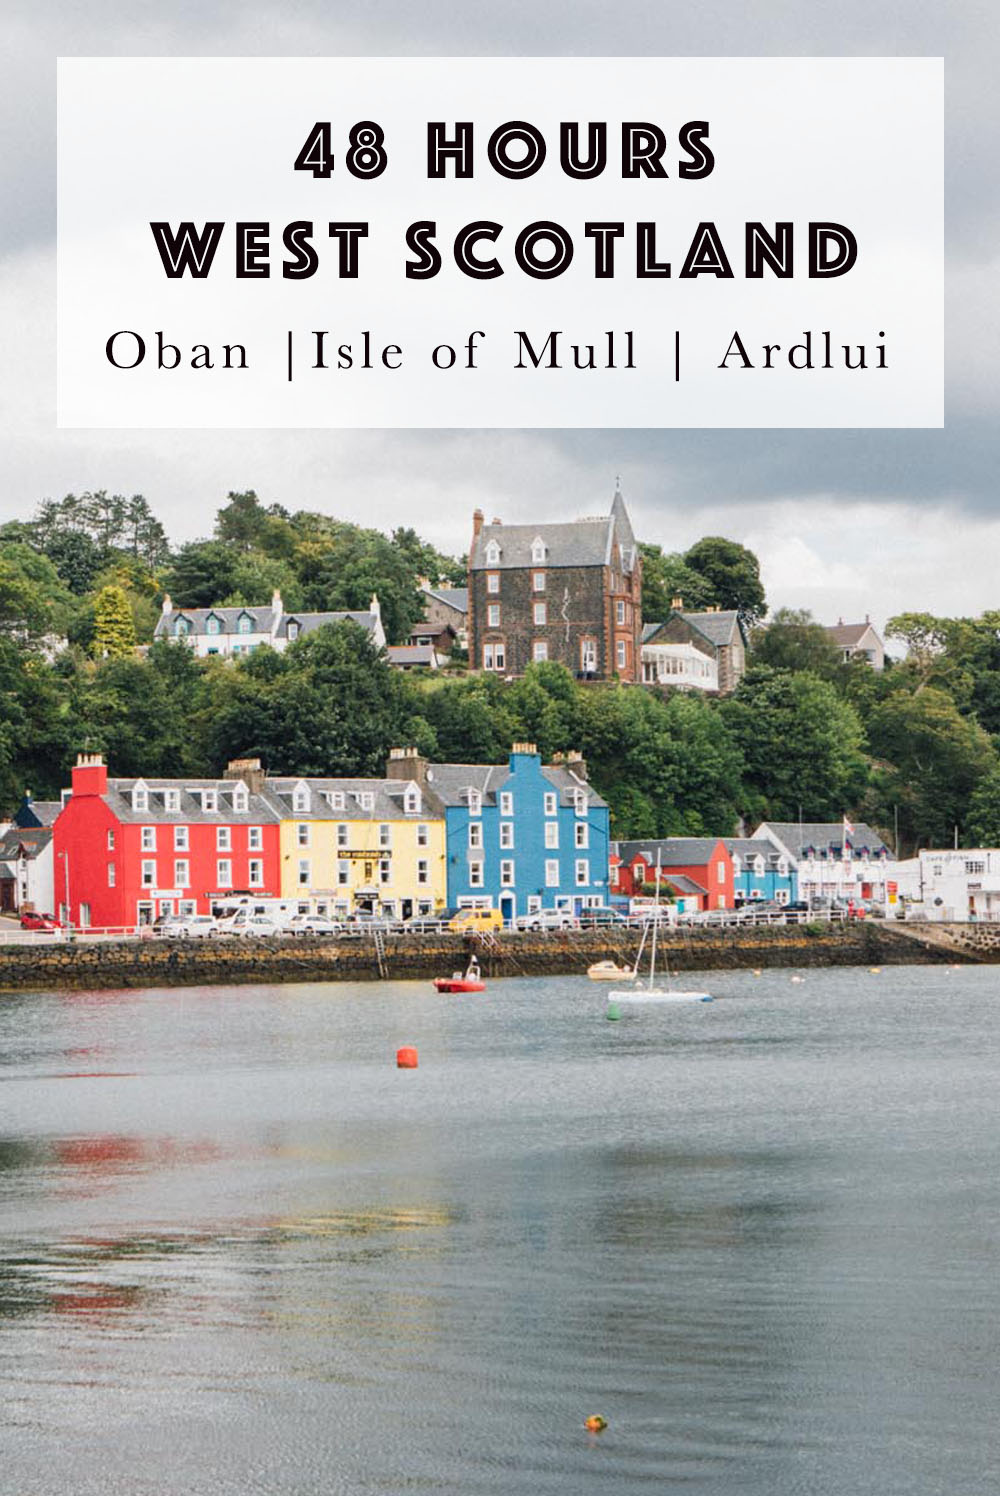 48 Hours in West Scotland: Oban, Tobermory and Ardlui